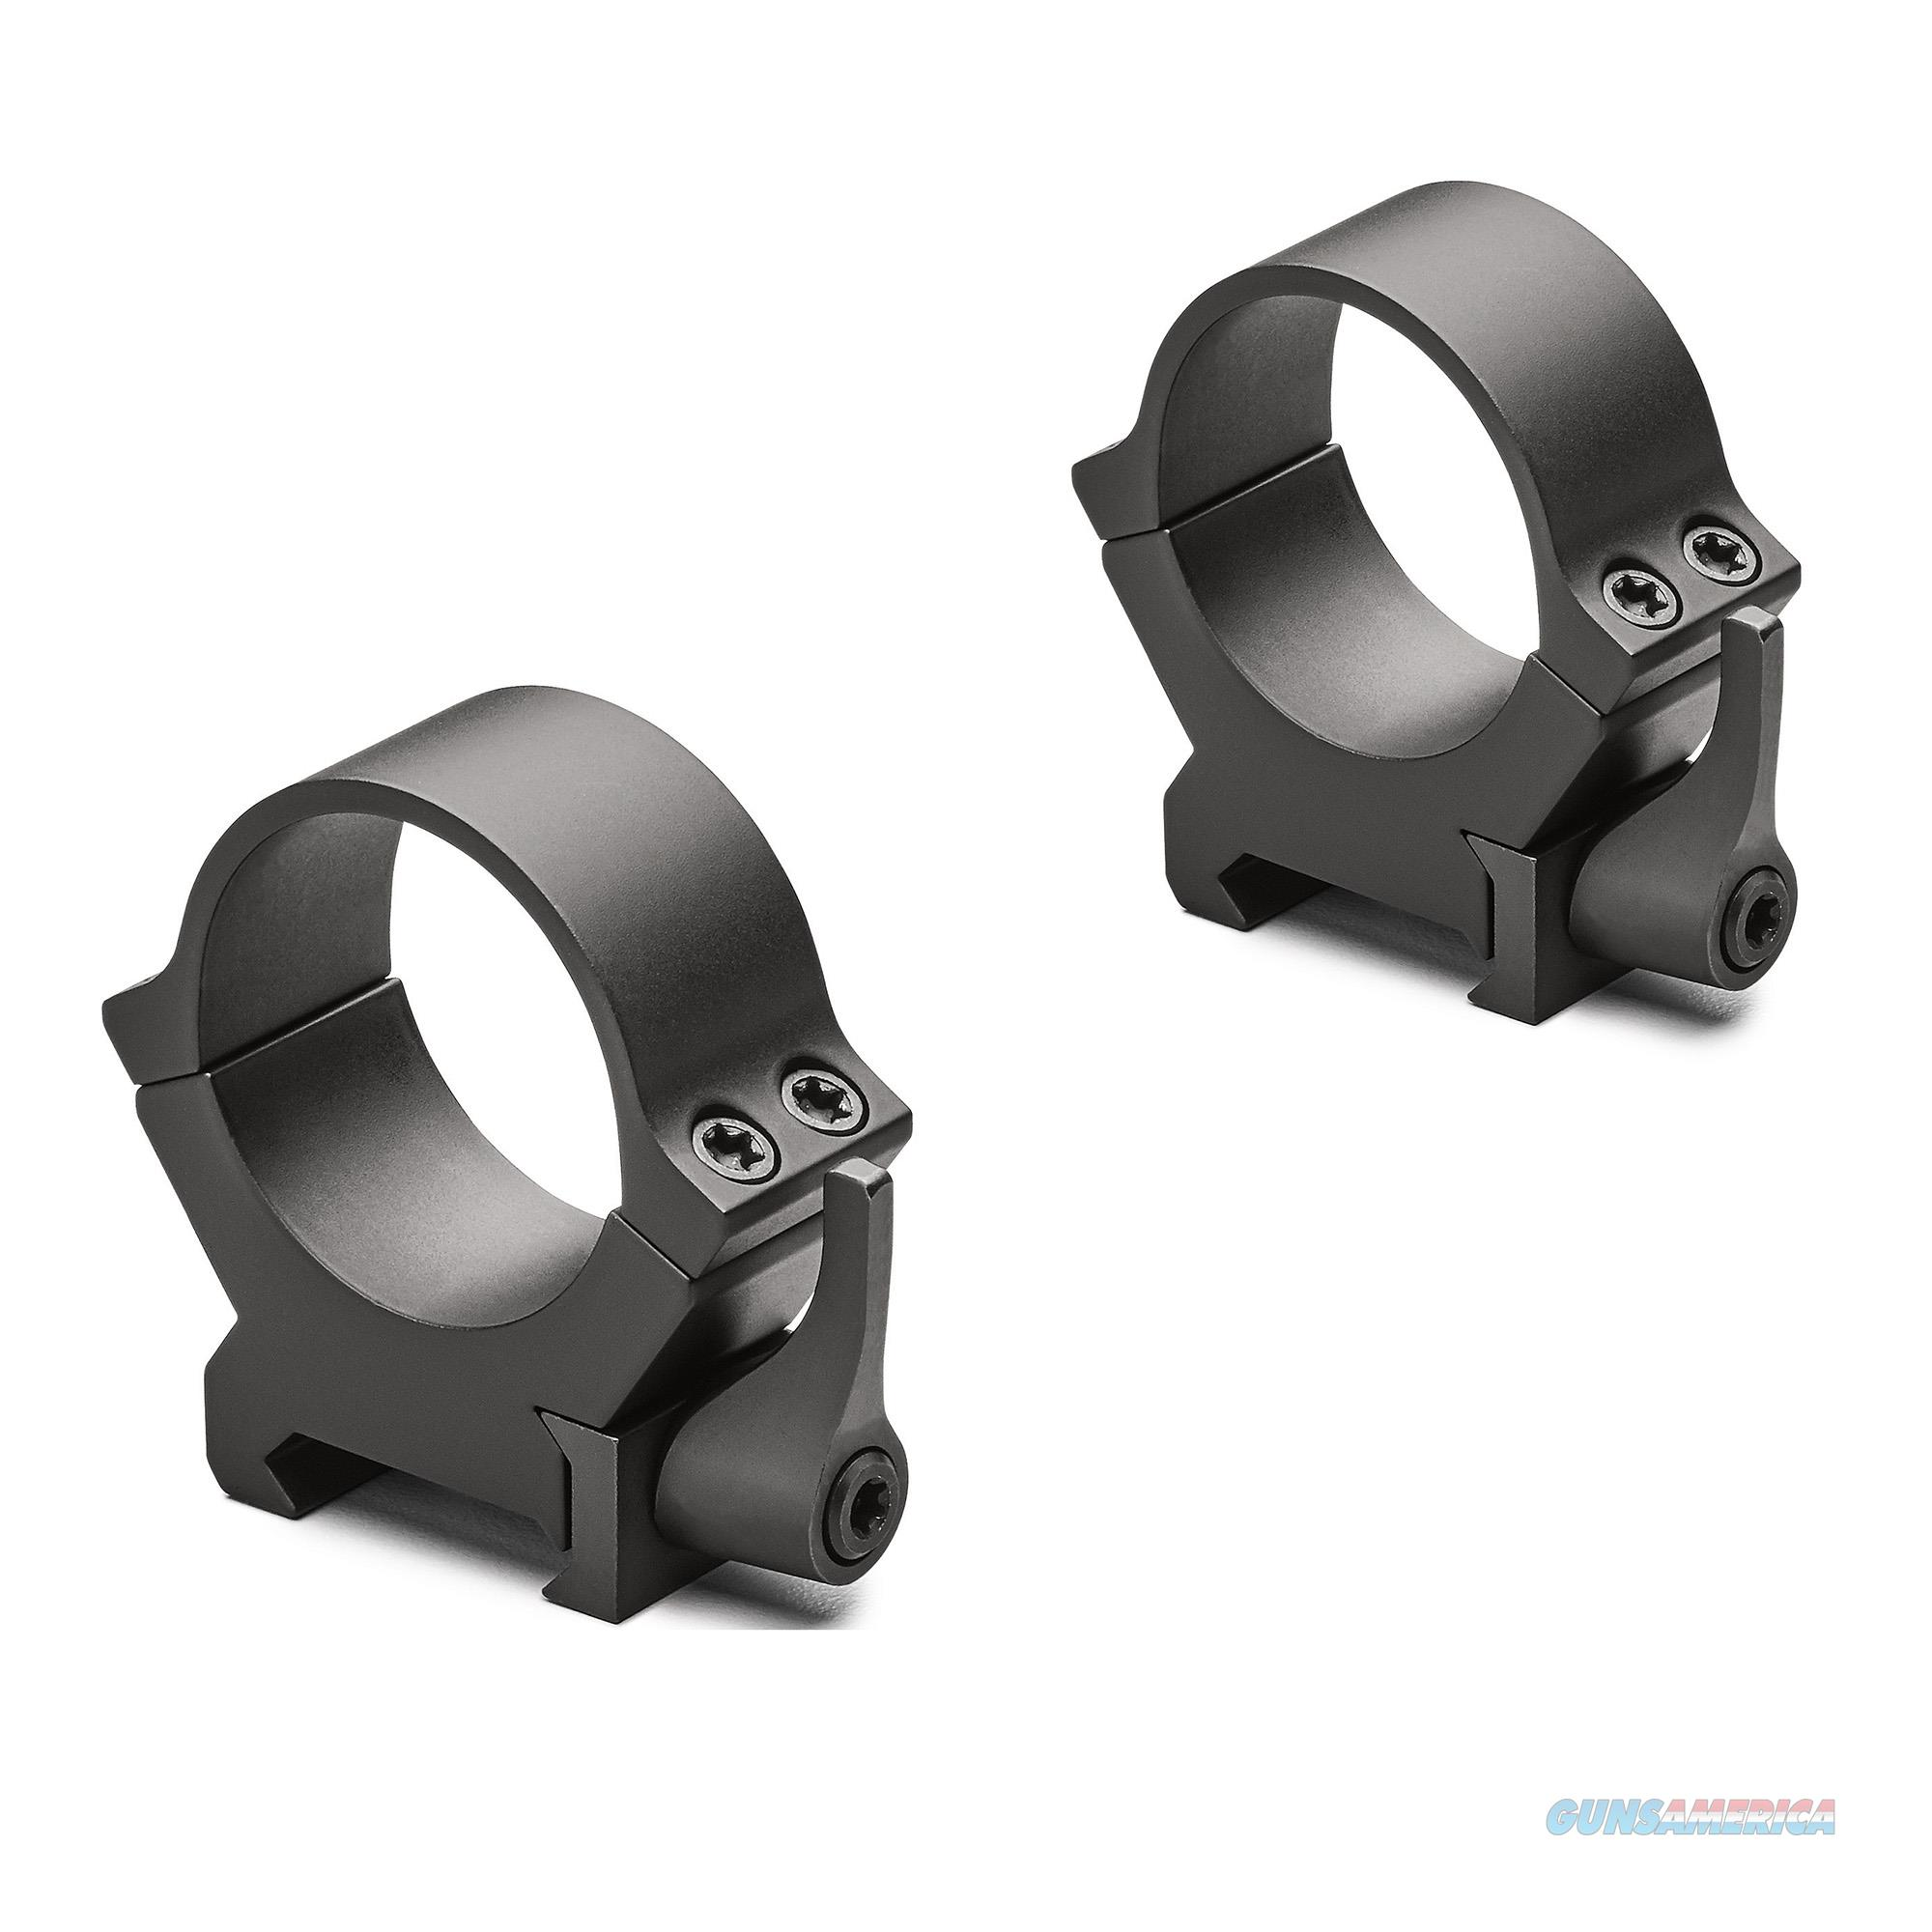 Leupold Rings Qrw2 30Mm Med Gloss 174075  Non-Guns > Scopes/Mounts/Rings & Optics > Mounts > Other